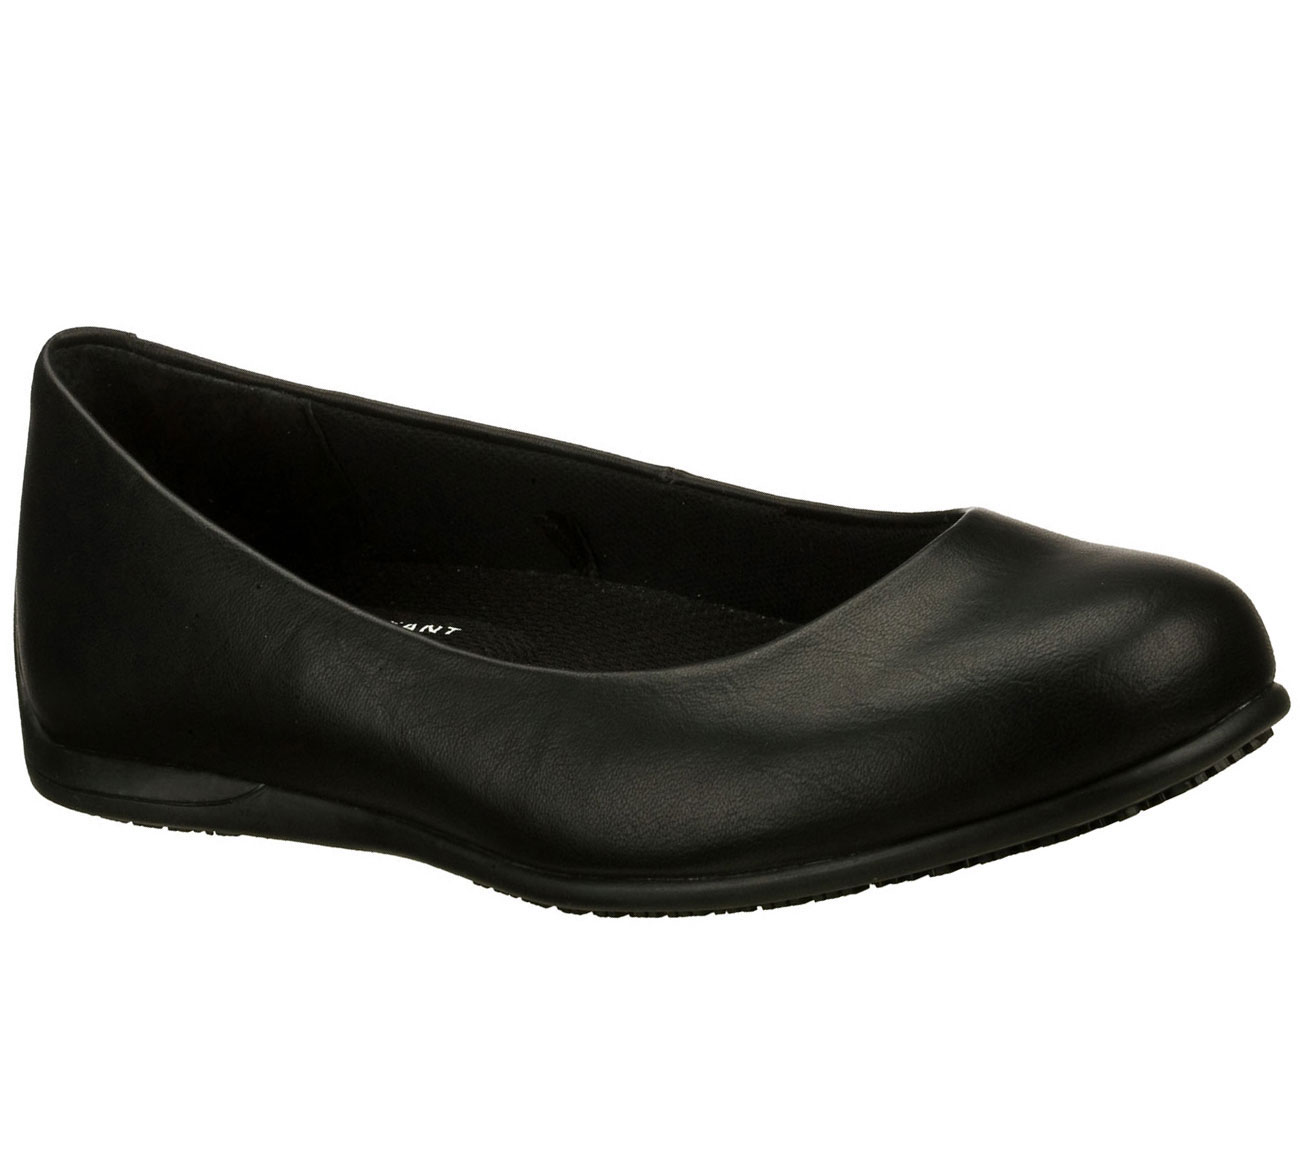 Buy SKECHERS Work: Flattery - Transpire SR Work Shoes only $47.00